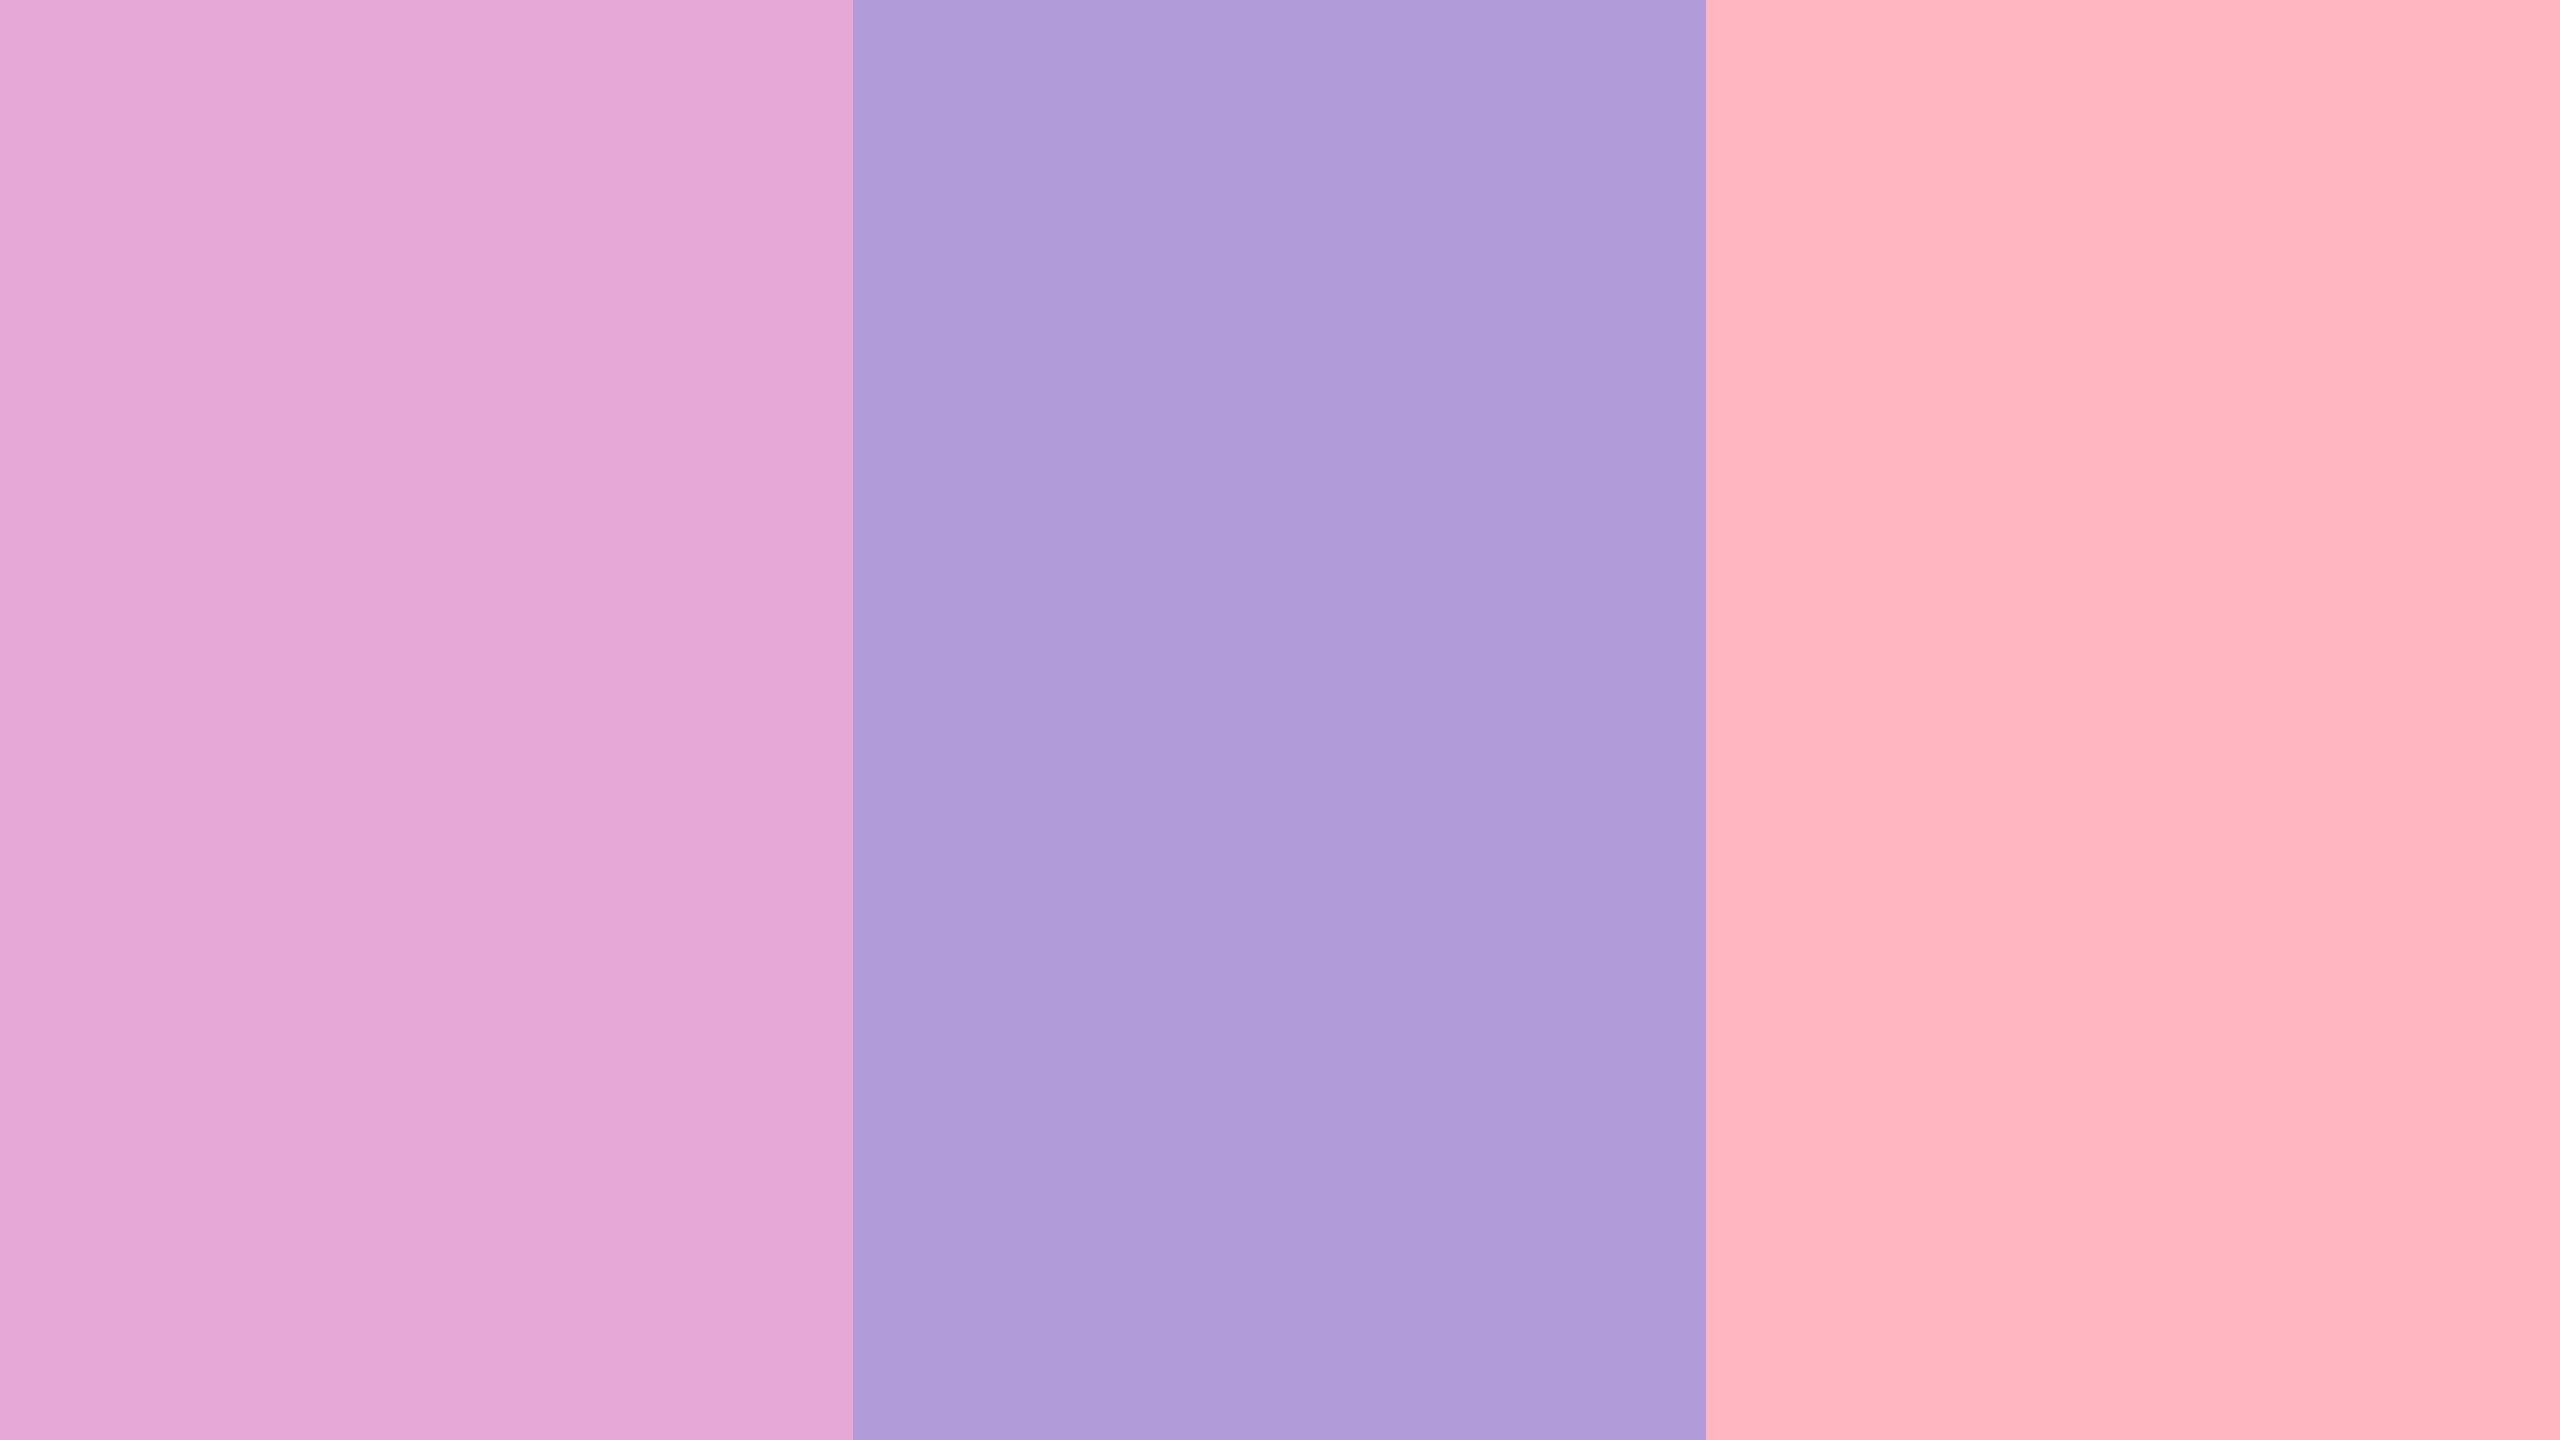 Light Pink Backgrounds 183 ①